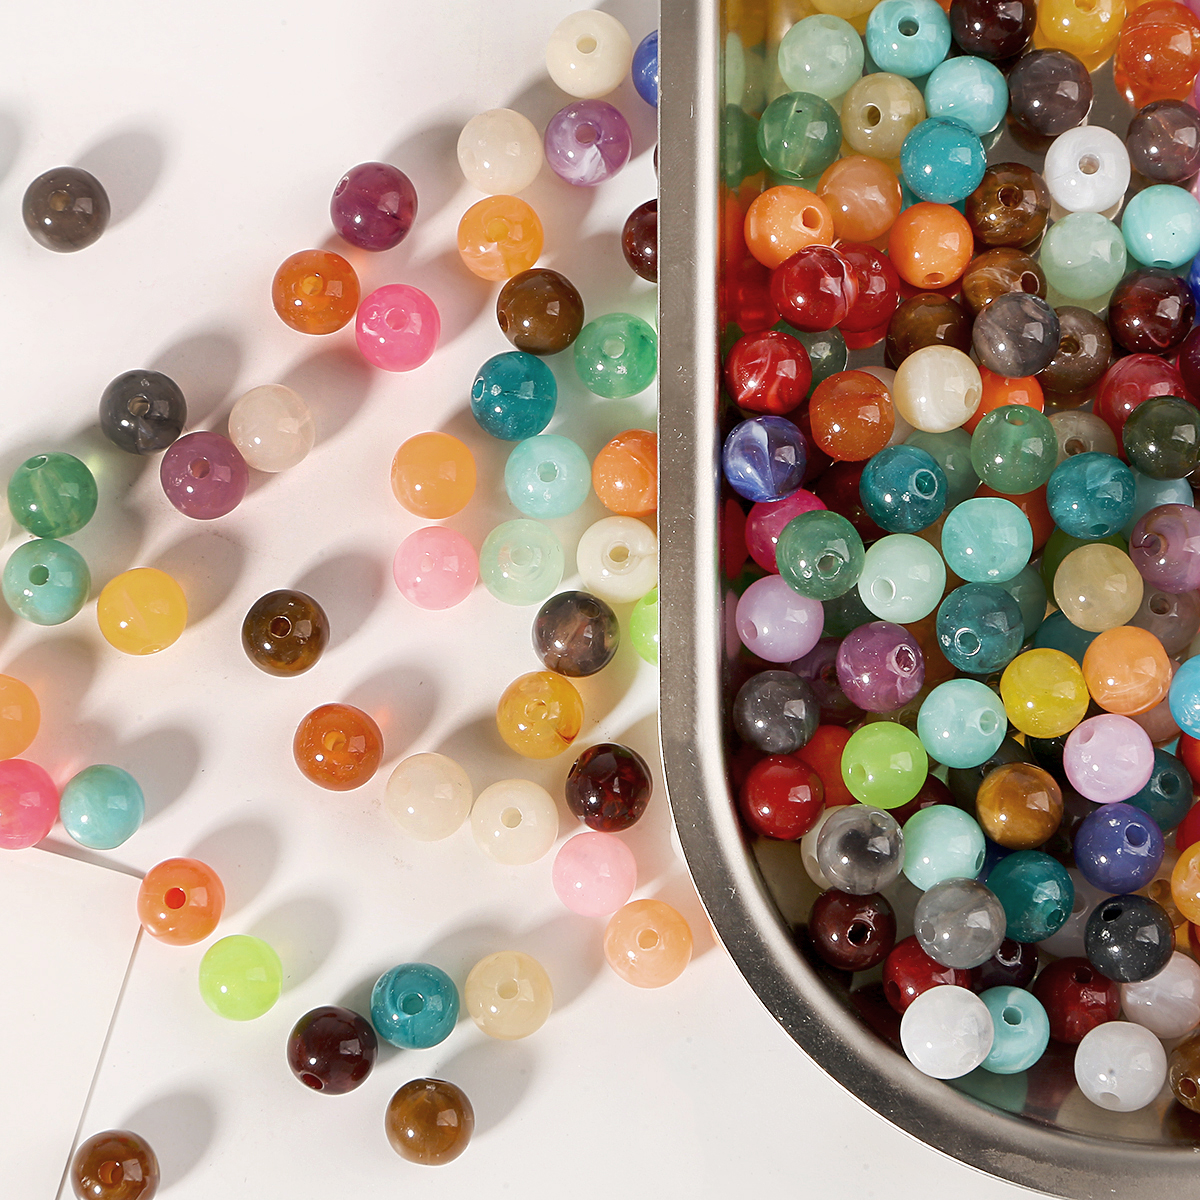 100 Pcs Acrylic Pearl Beads Charms Spacer Bead Jewelry Making findings 8mm